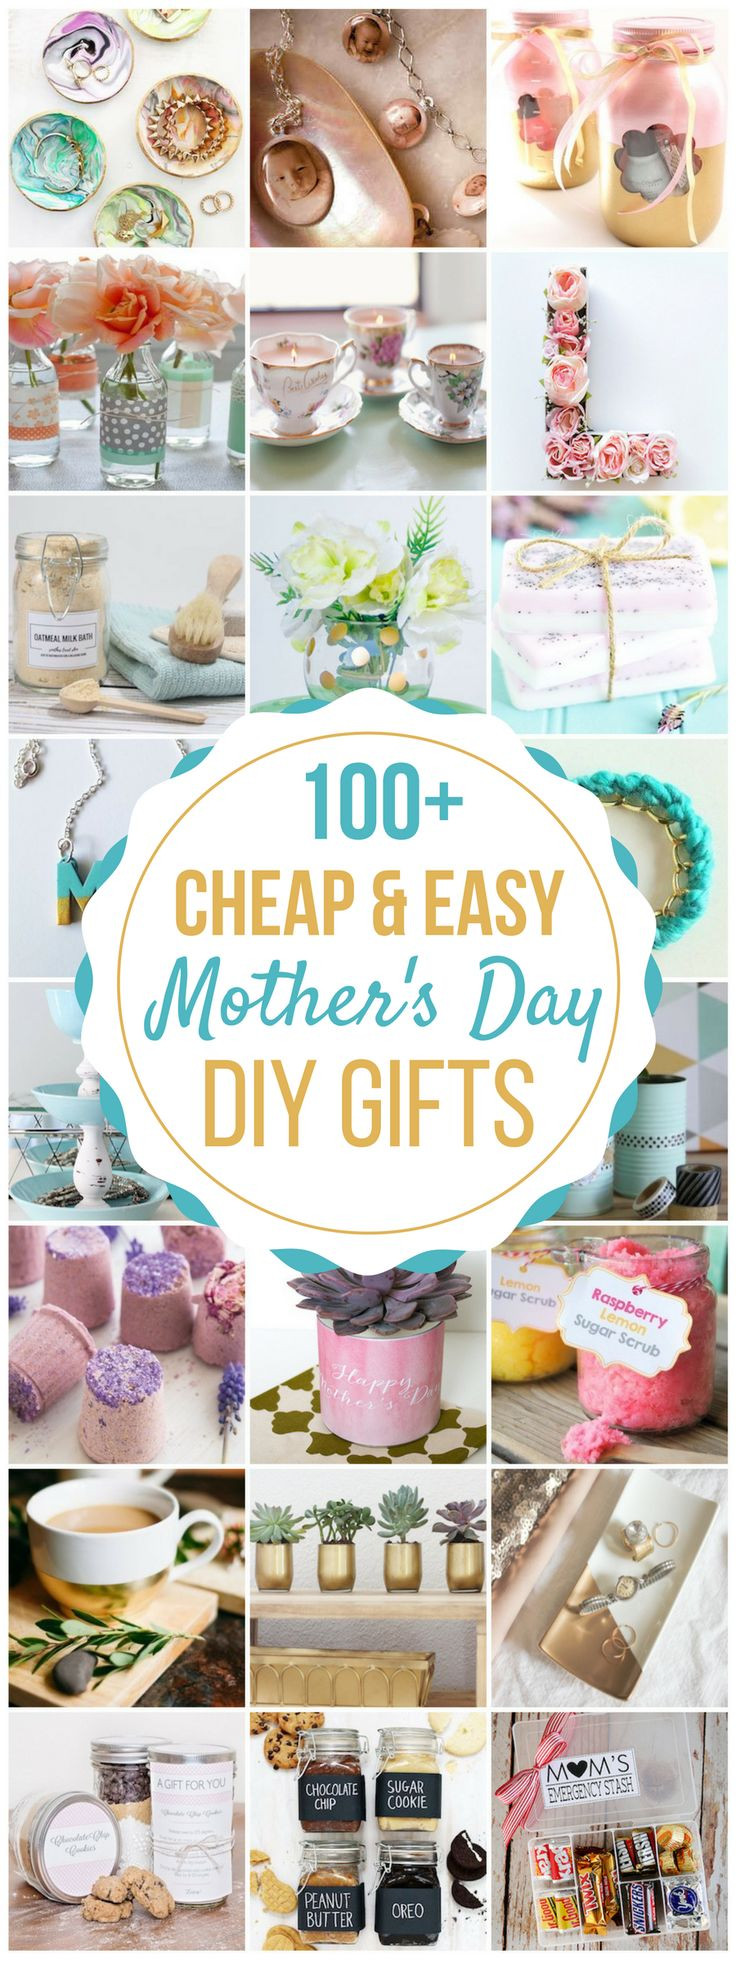 Pinterest Mothers Day Gift Ideas  17 Best images about Homemade Gift Ideas on Pinterest